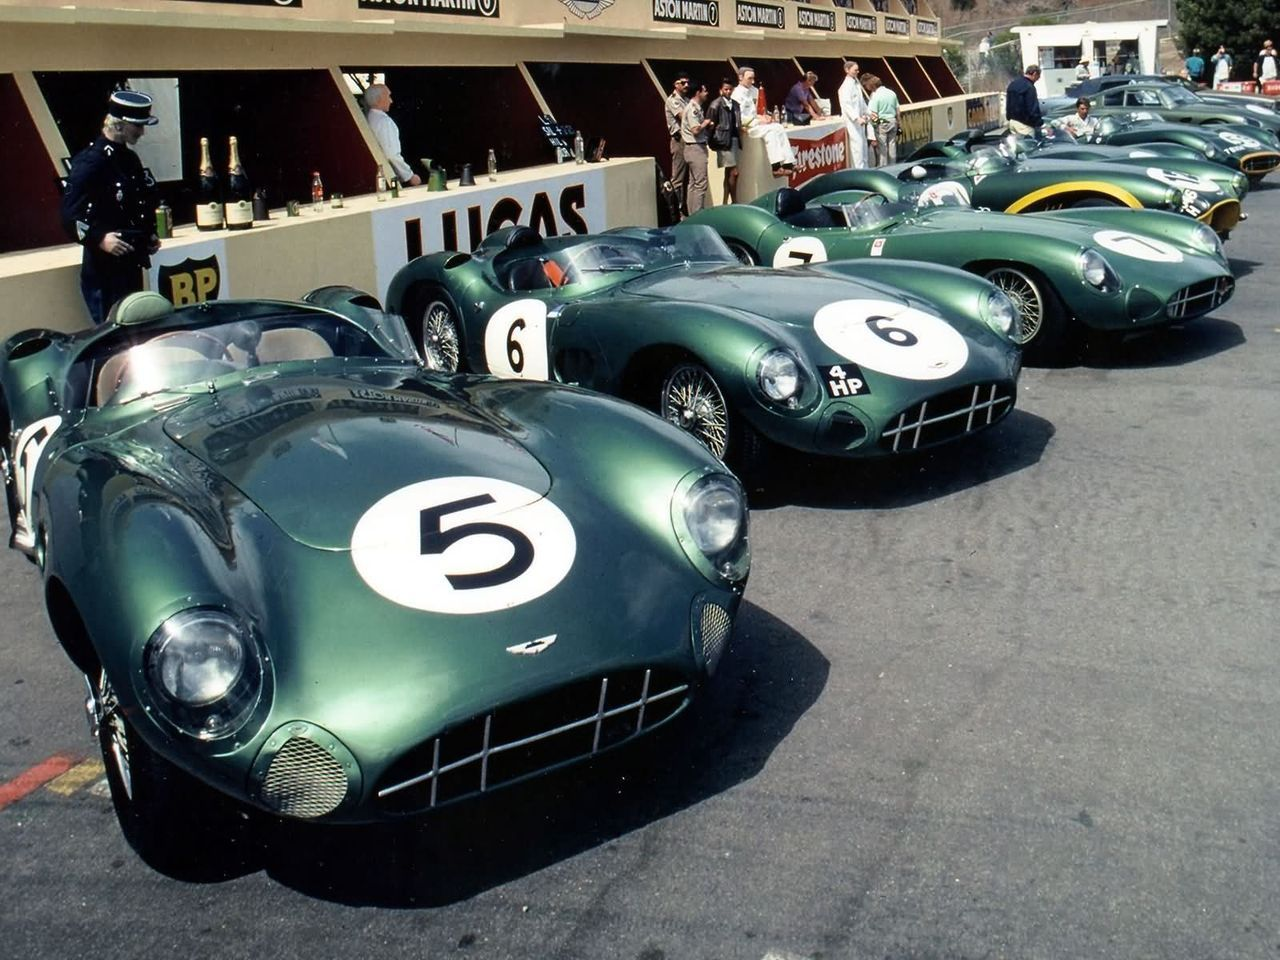 1959 .. Le Mans , entered by David Brown racing dept. Aston Martin DBR1 No. 5 driven by R.Salvadori / C.Shelby = winner .. No.6 , M.Trintingnat / P.Frere 2nd o/a .. No.7 DNF>accident .